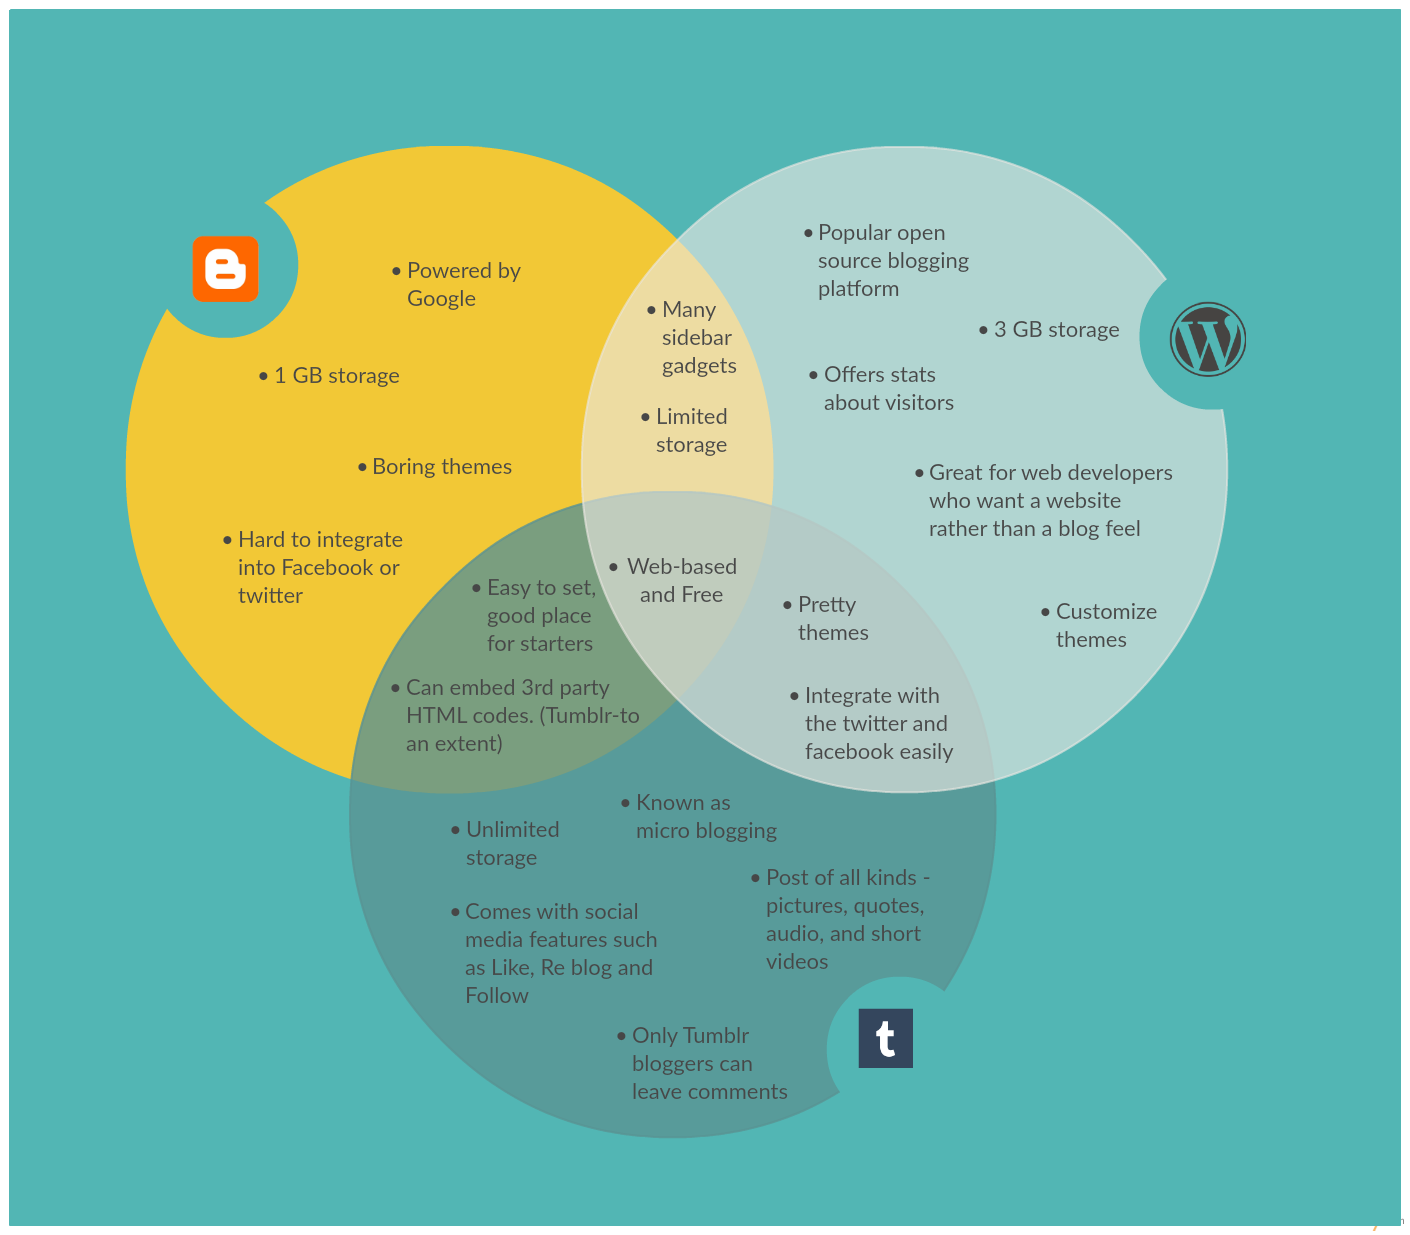 Venn diagram templates editable online or download for free venn diagram template on the different blogging platforms pooptronica Choice Image